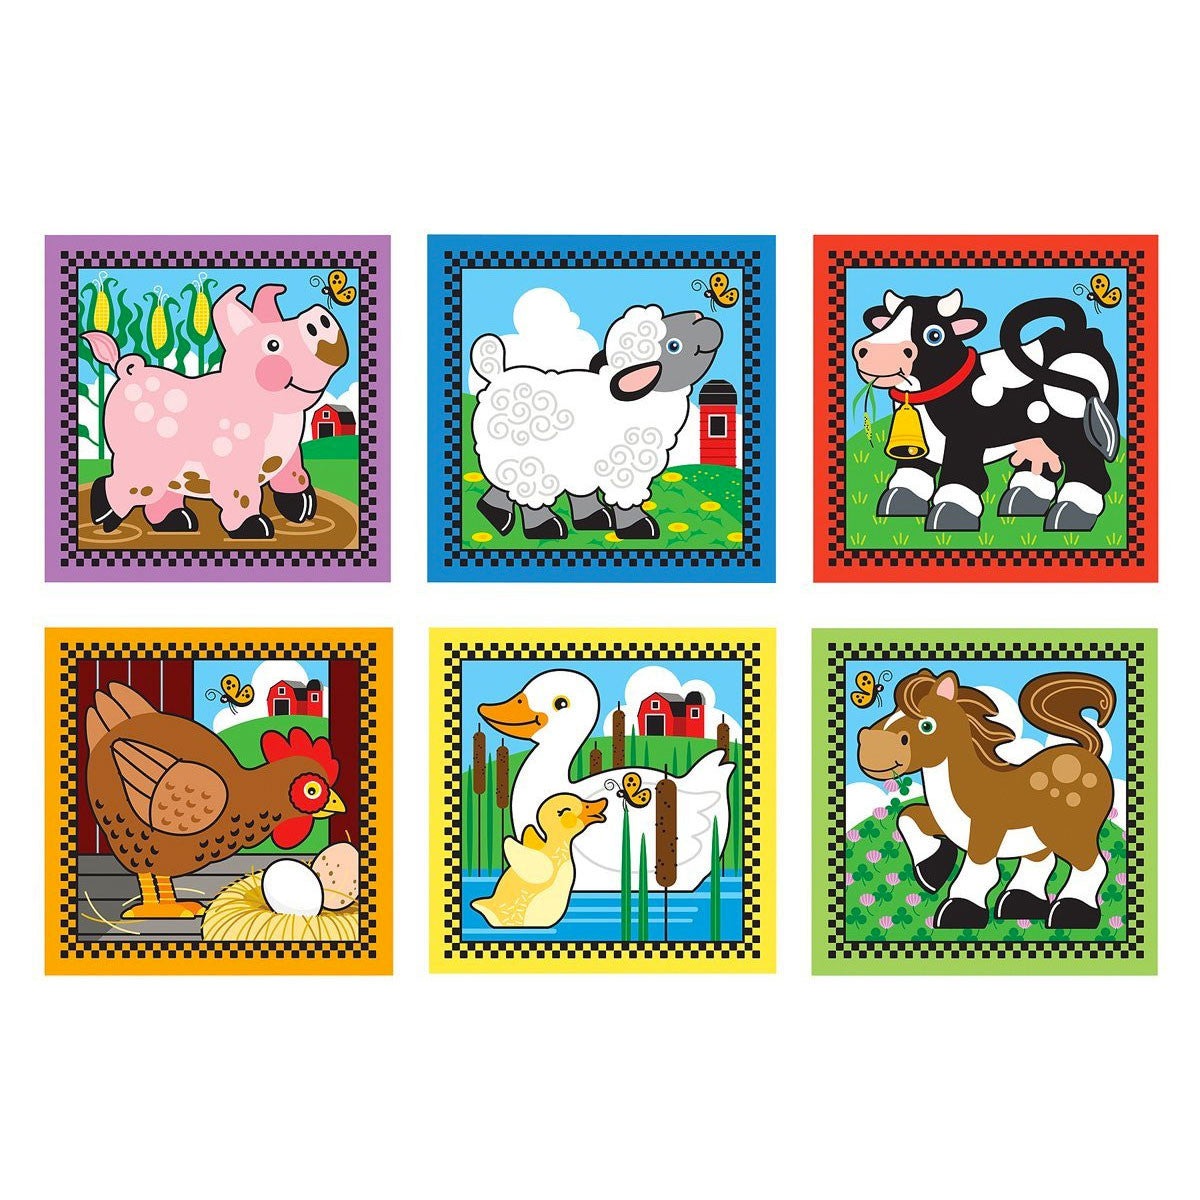 Melissa and Doug Cube Puzzle - 16 Piece   - Melissa and Doug - Little Earth Nest - 3